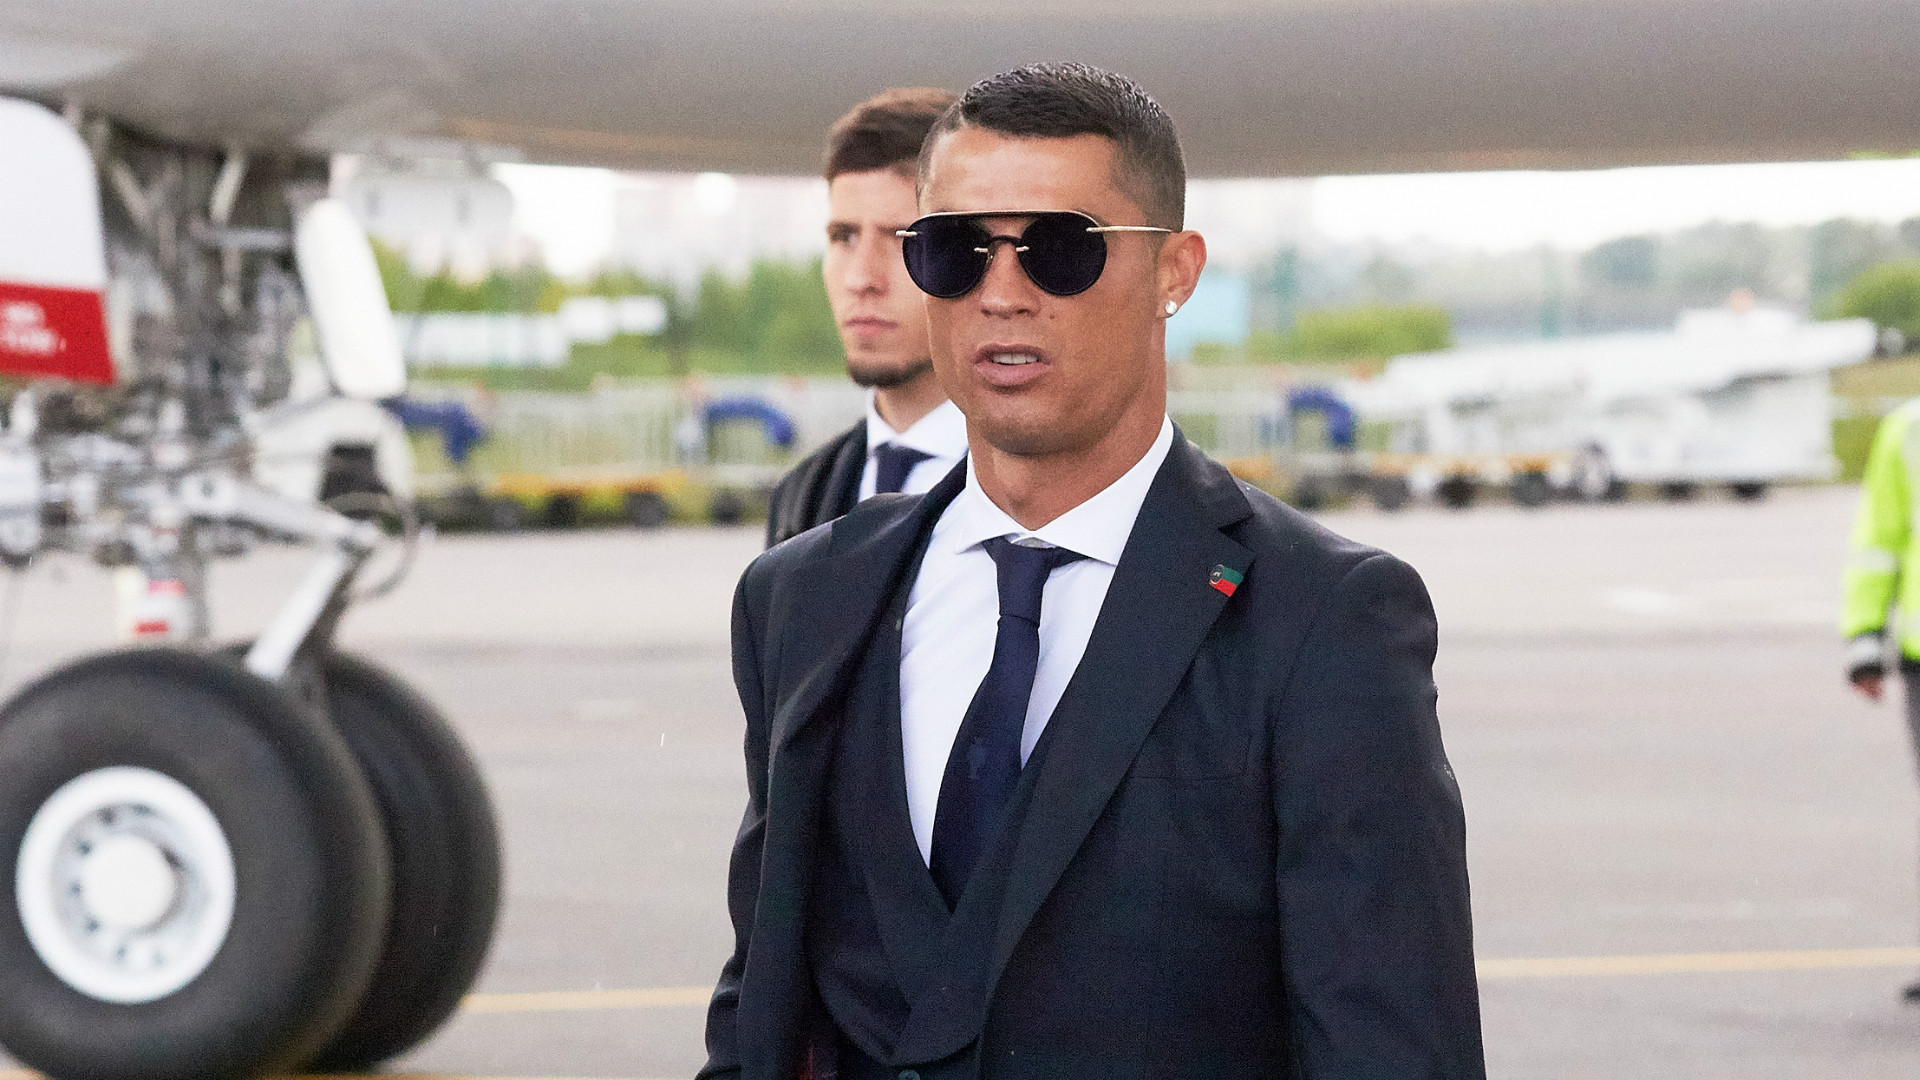 https://images.performgroup.com/di/library/GOAL/4/23/cristiano-ronaldo-at-the-airport_mciur17pc90d1f6d26uno1i6x.jpg